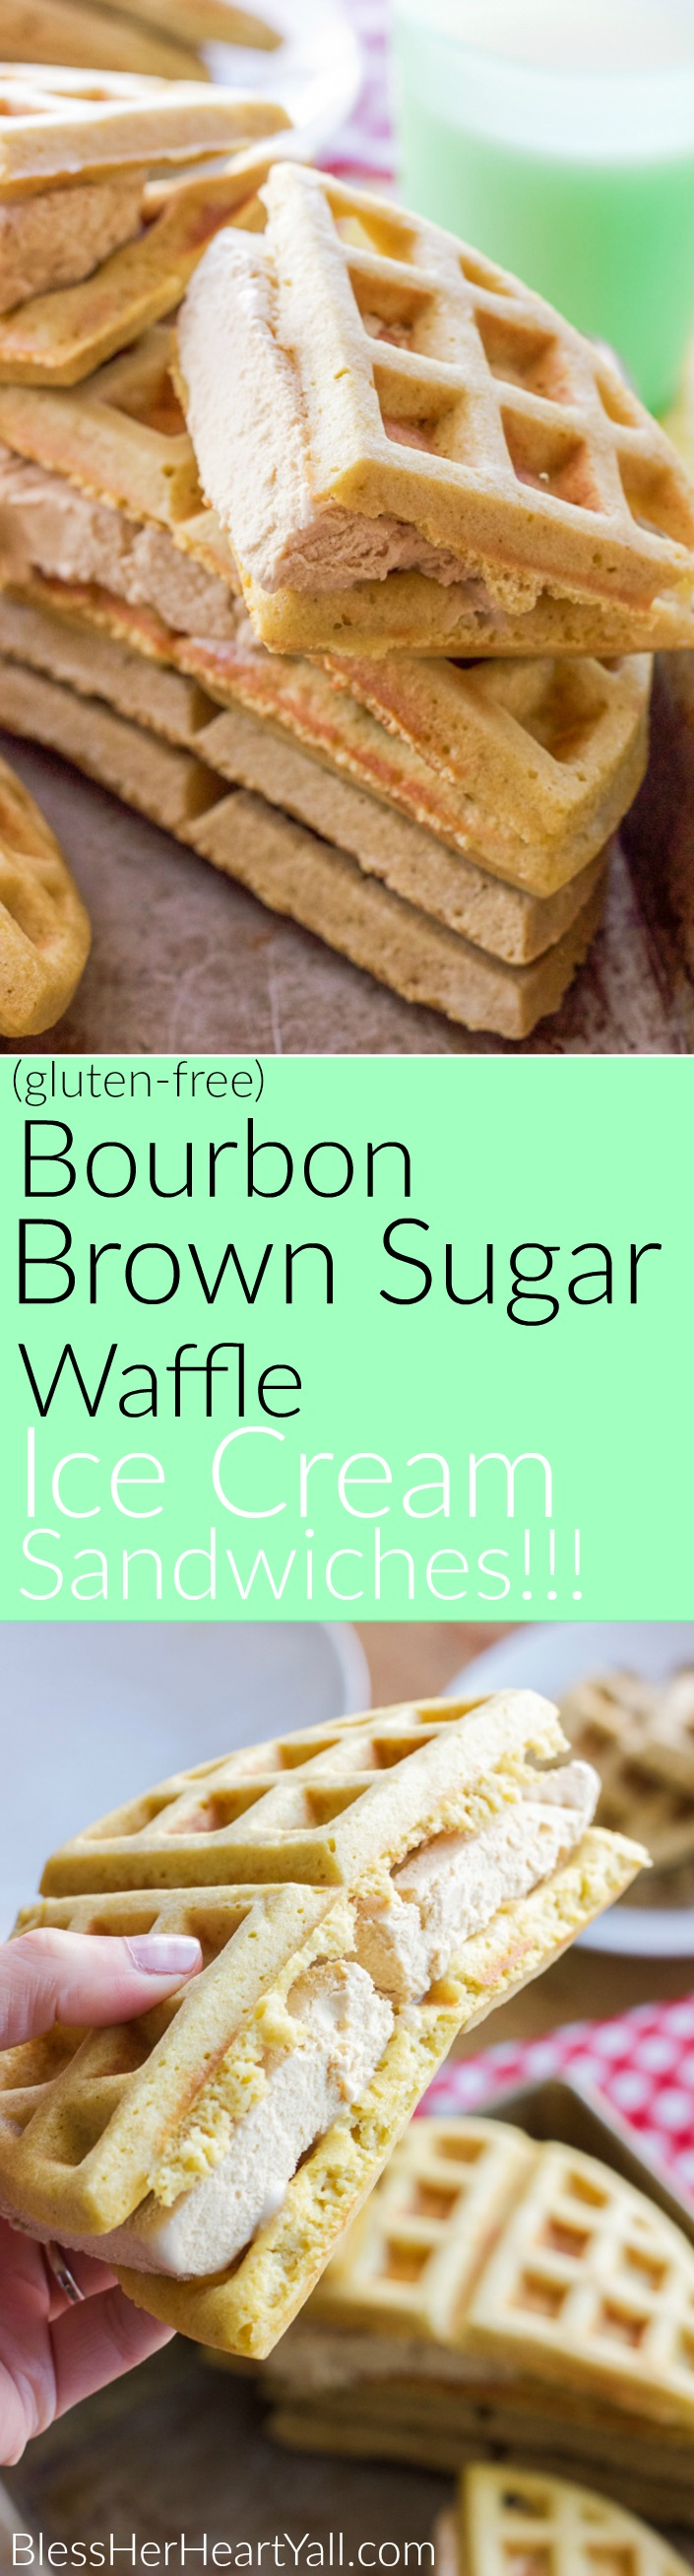 Bourbon brown sugar ice cream is placed between two fresh gluten-free brown sugar waffles for a fun gluten free adult version of the ice cream sandwich.